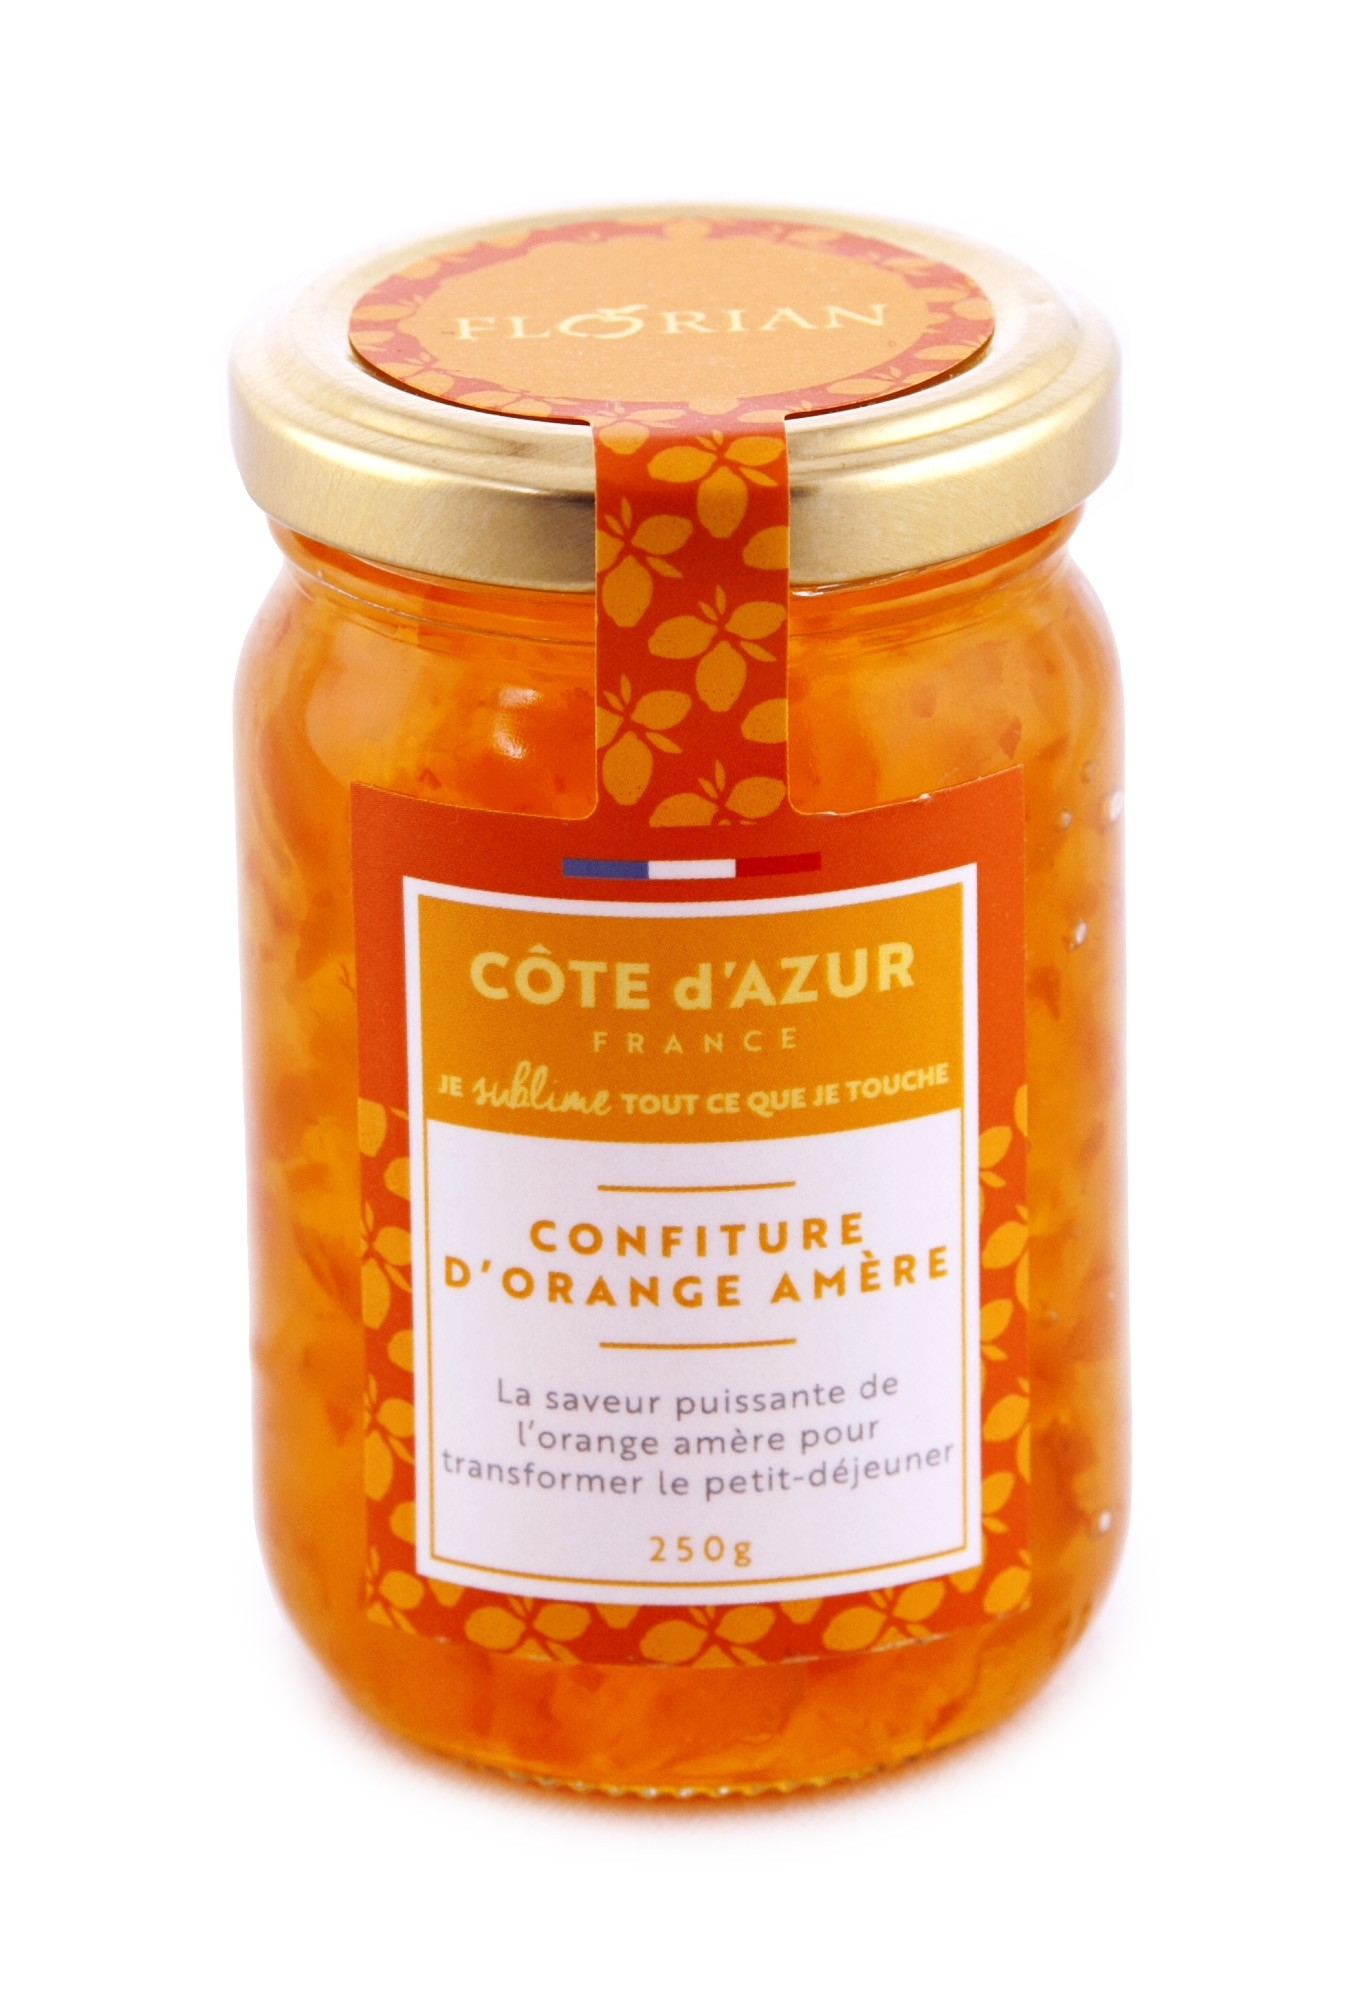 250 gr marmelade jar - Collection Côte d'Azur France